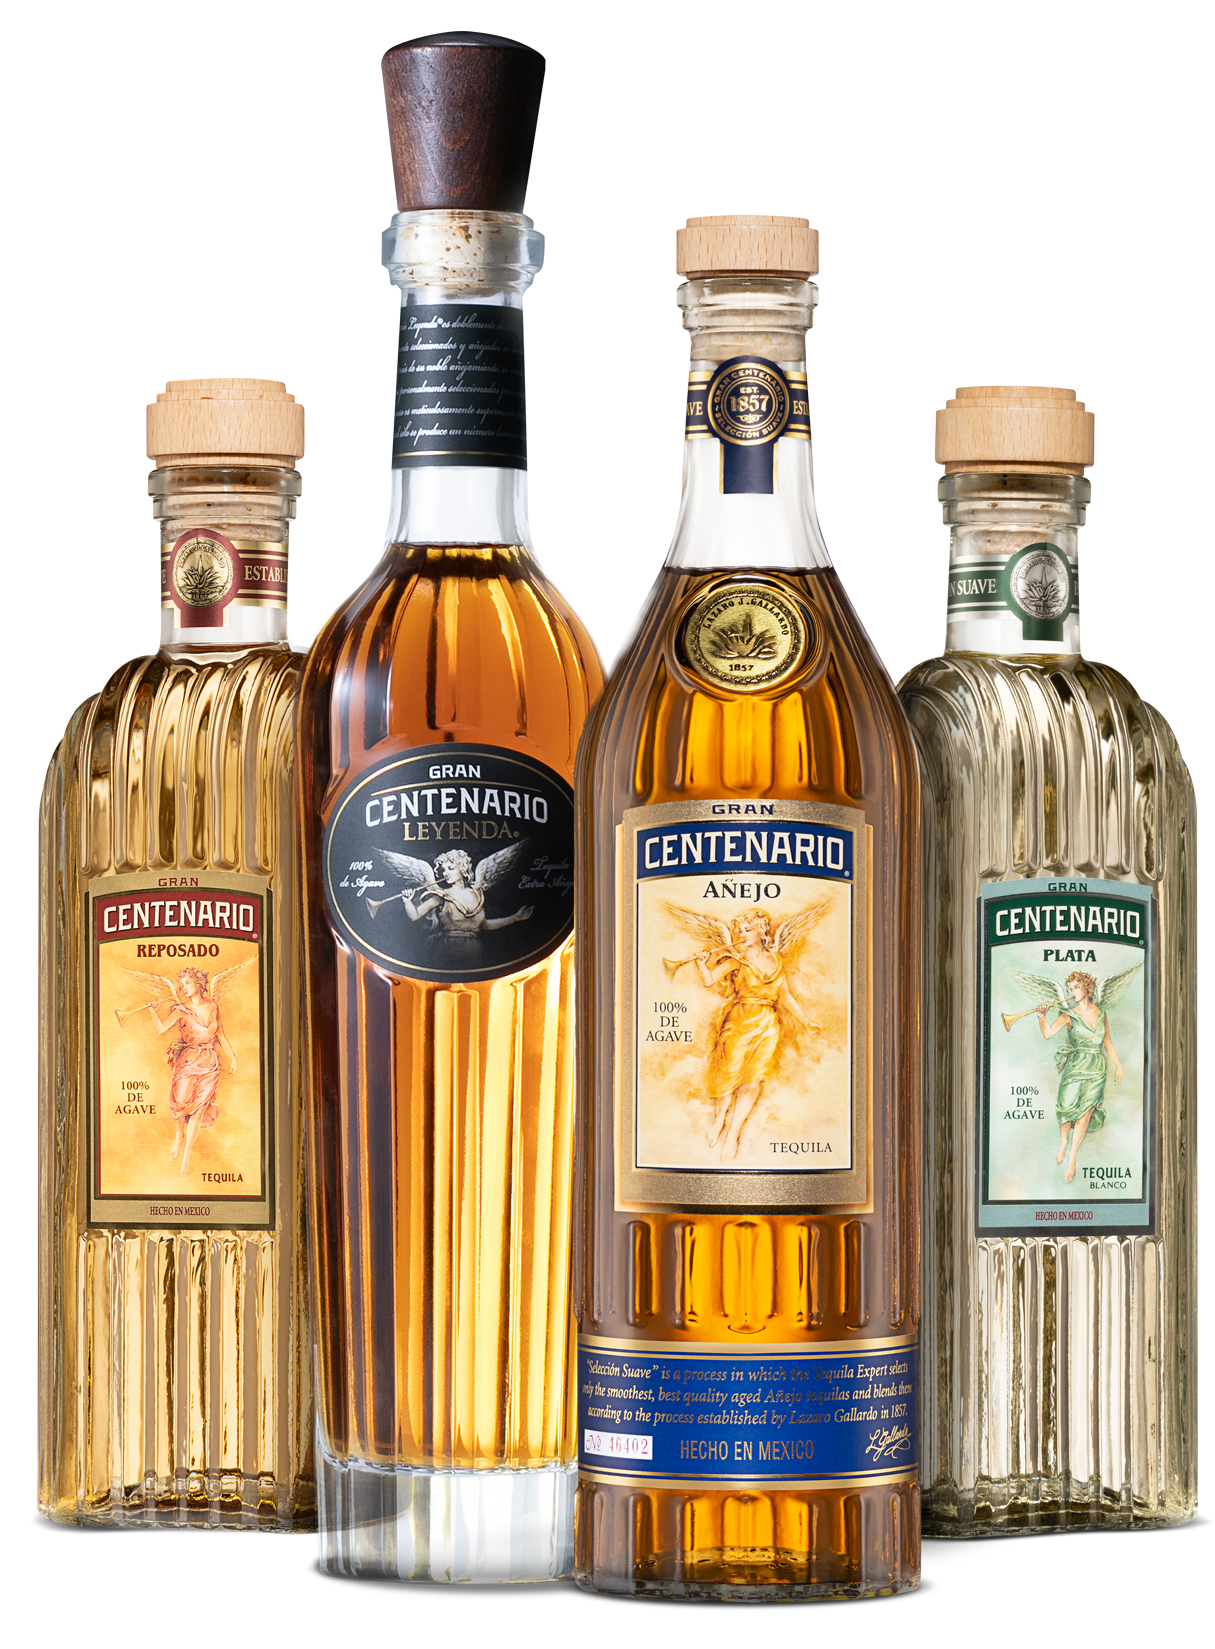 Gran Centenario Tequila - The Guardian of Tradition and Mexico's #1 Tequila